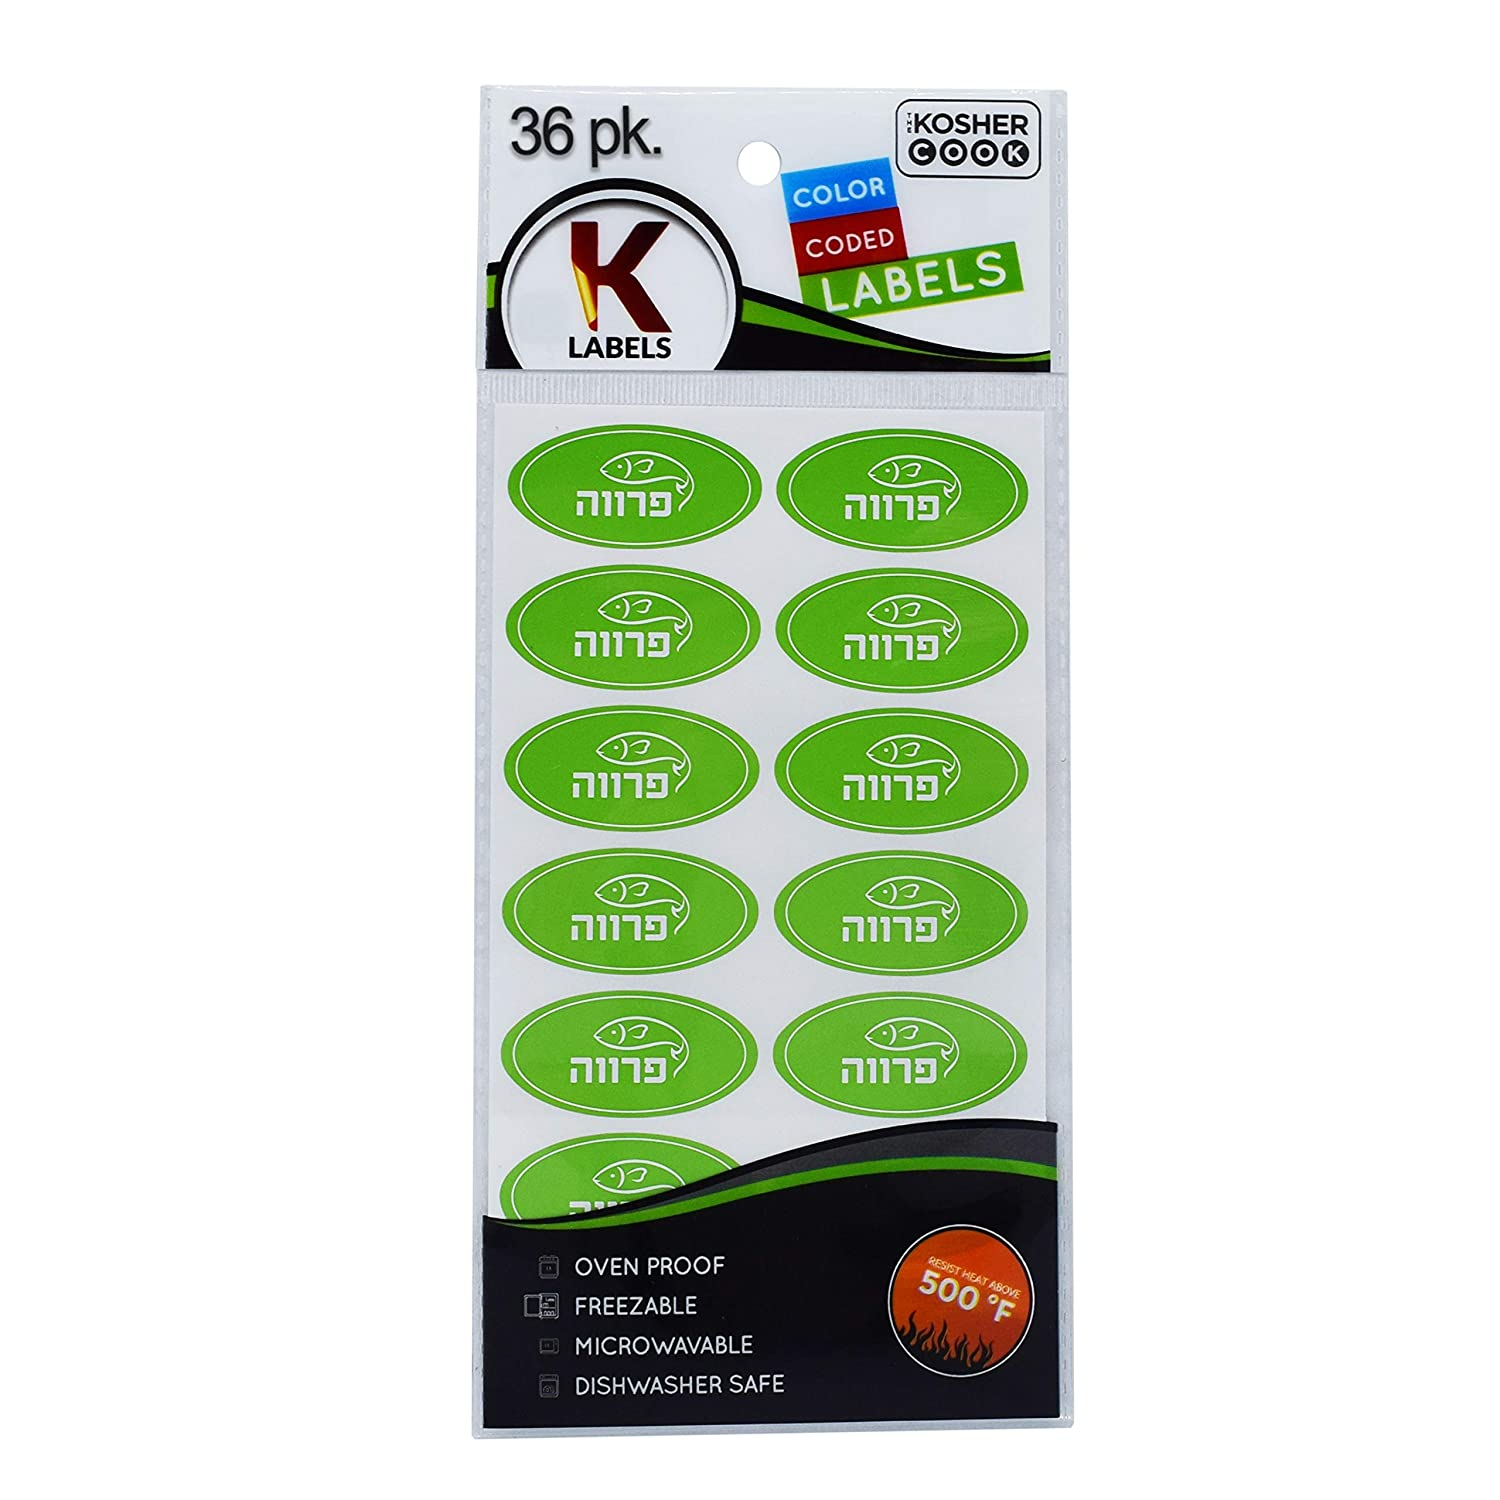 36 Parve Green Kosher Labels – Oven Proof up to 500°, Freezable, Microwavable, Dishwasher Safe, Hebrew - Color Coded Kitchen Stickers by The Kosher Cook